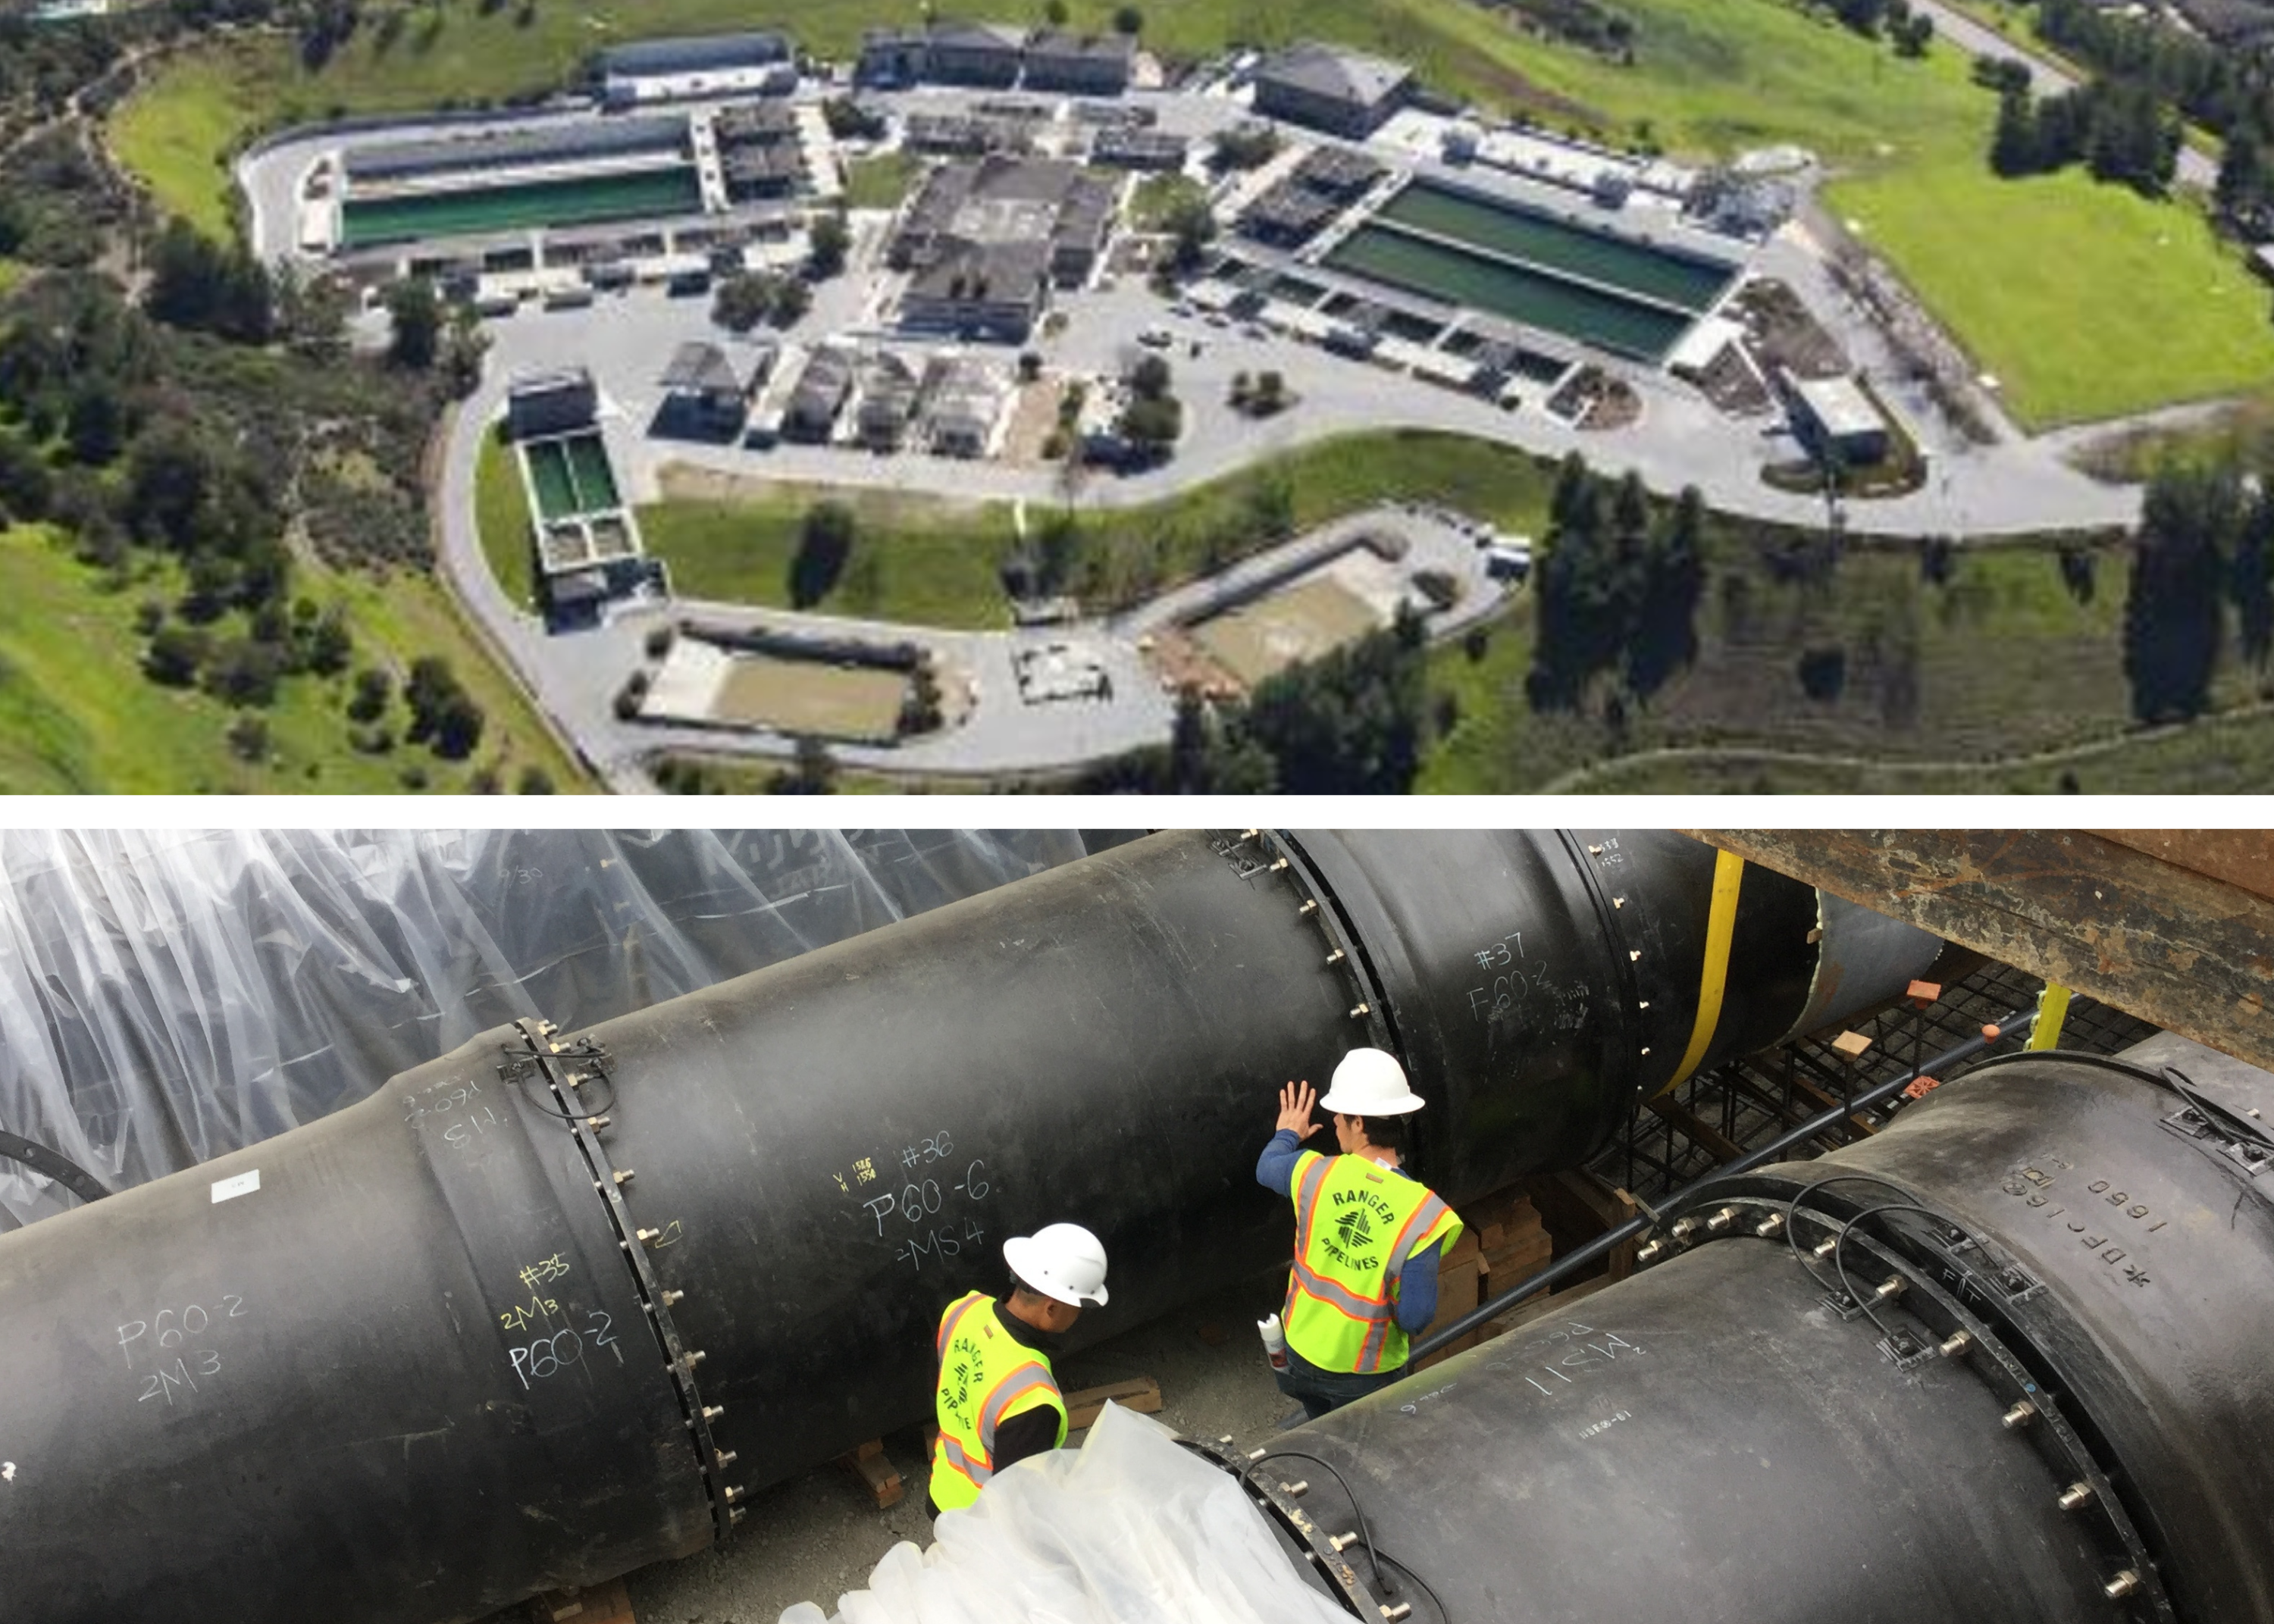 Water treatment plant aerial image and distribution system IP